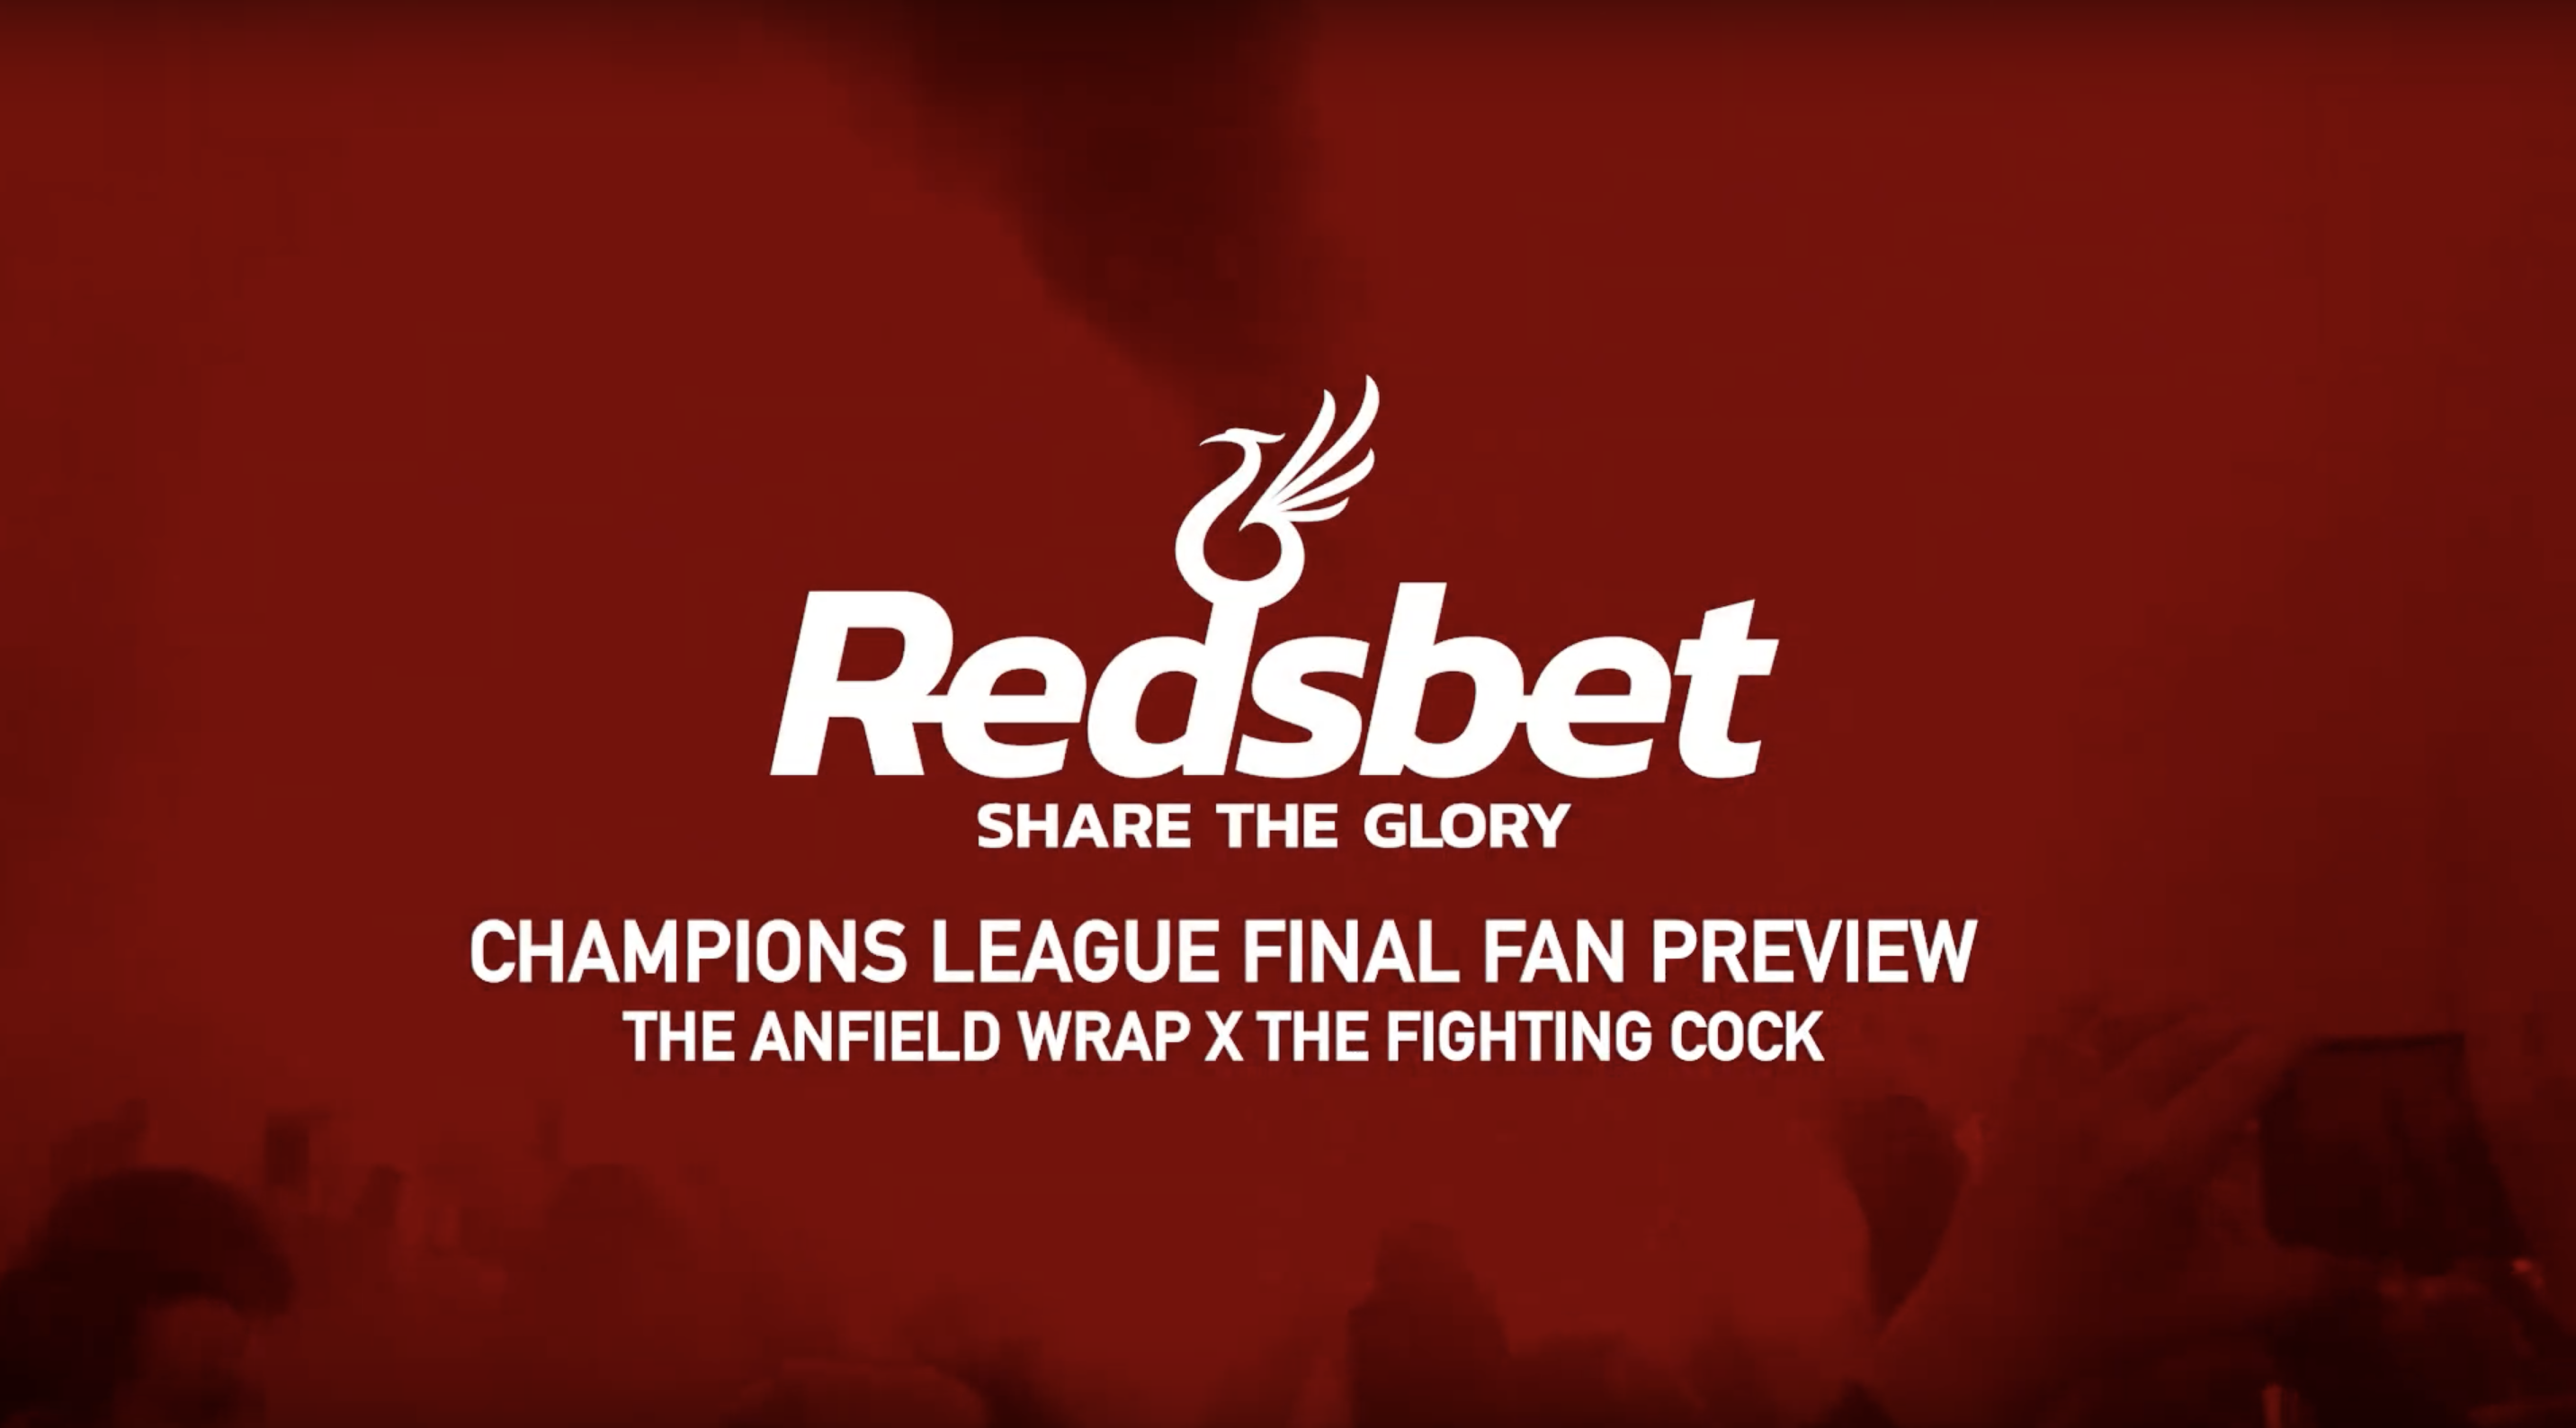 Champions League Final Preview: The Anfield Wrap vs The Fighting Cock